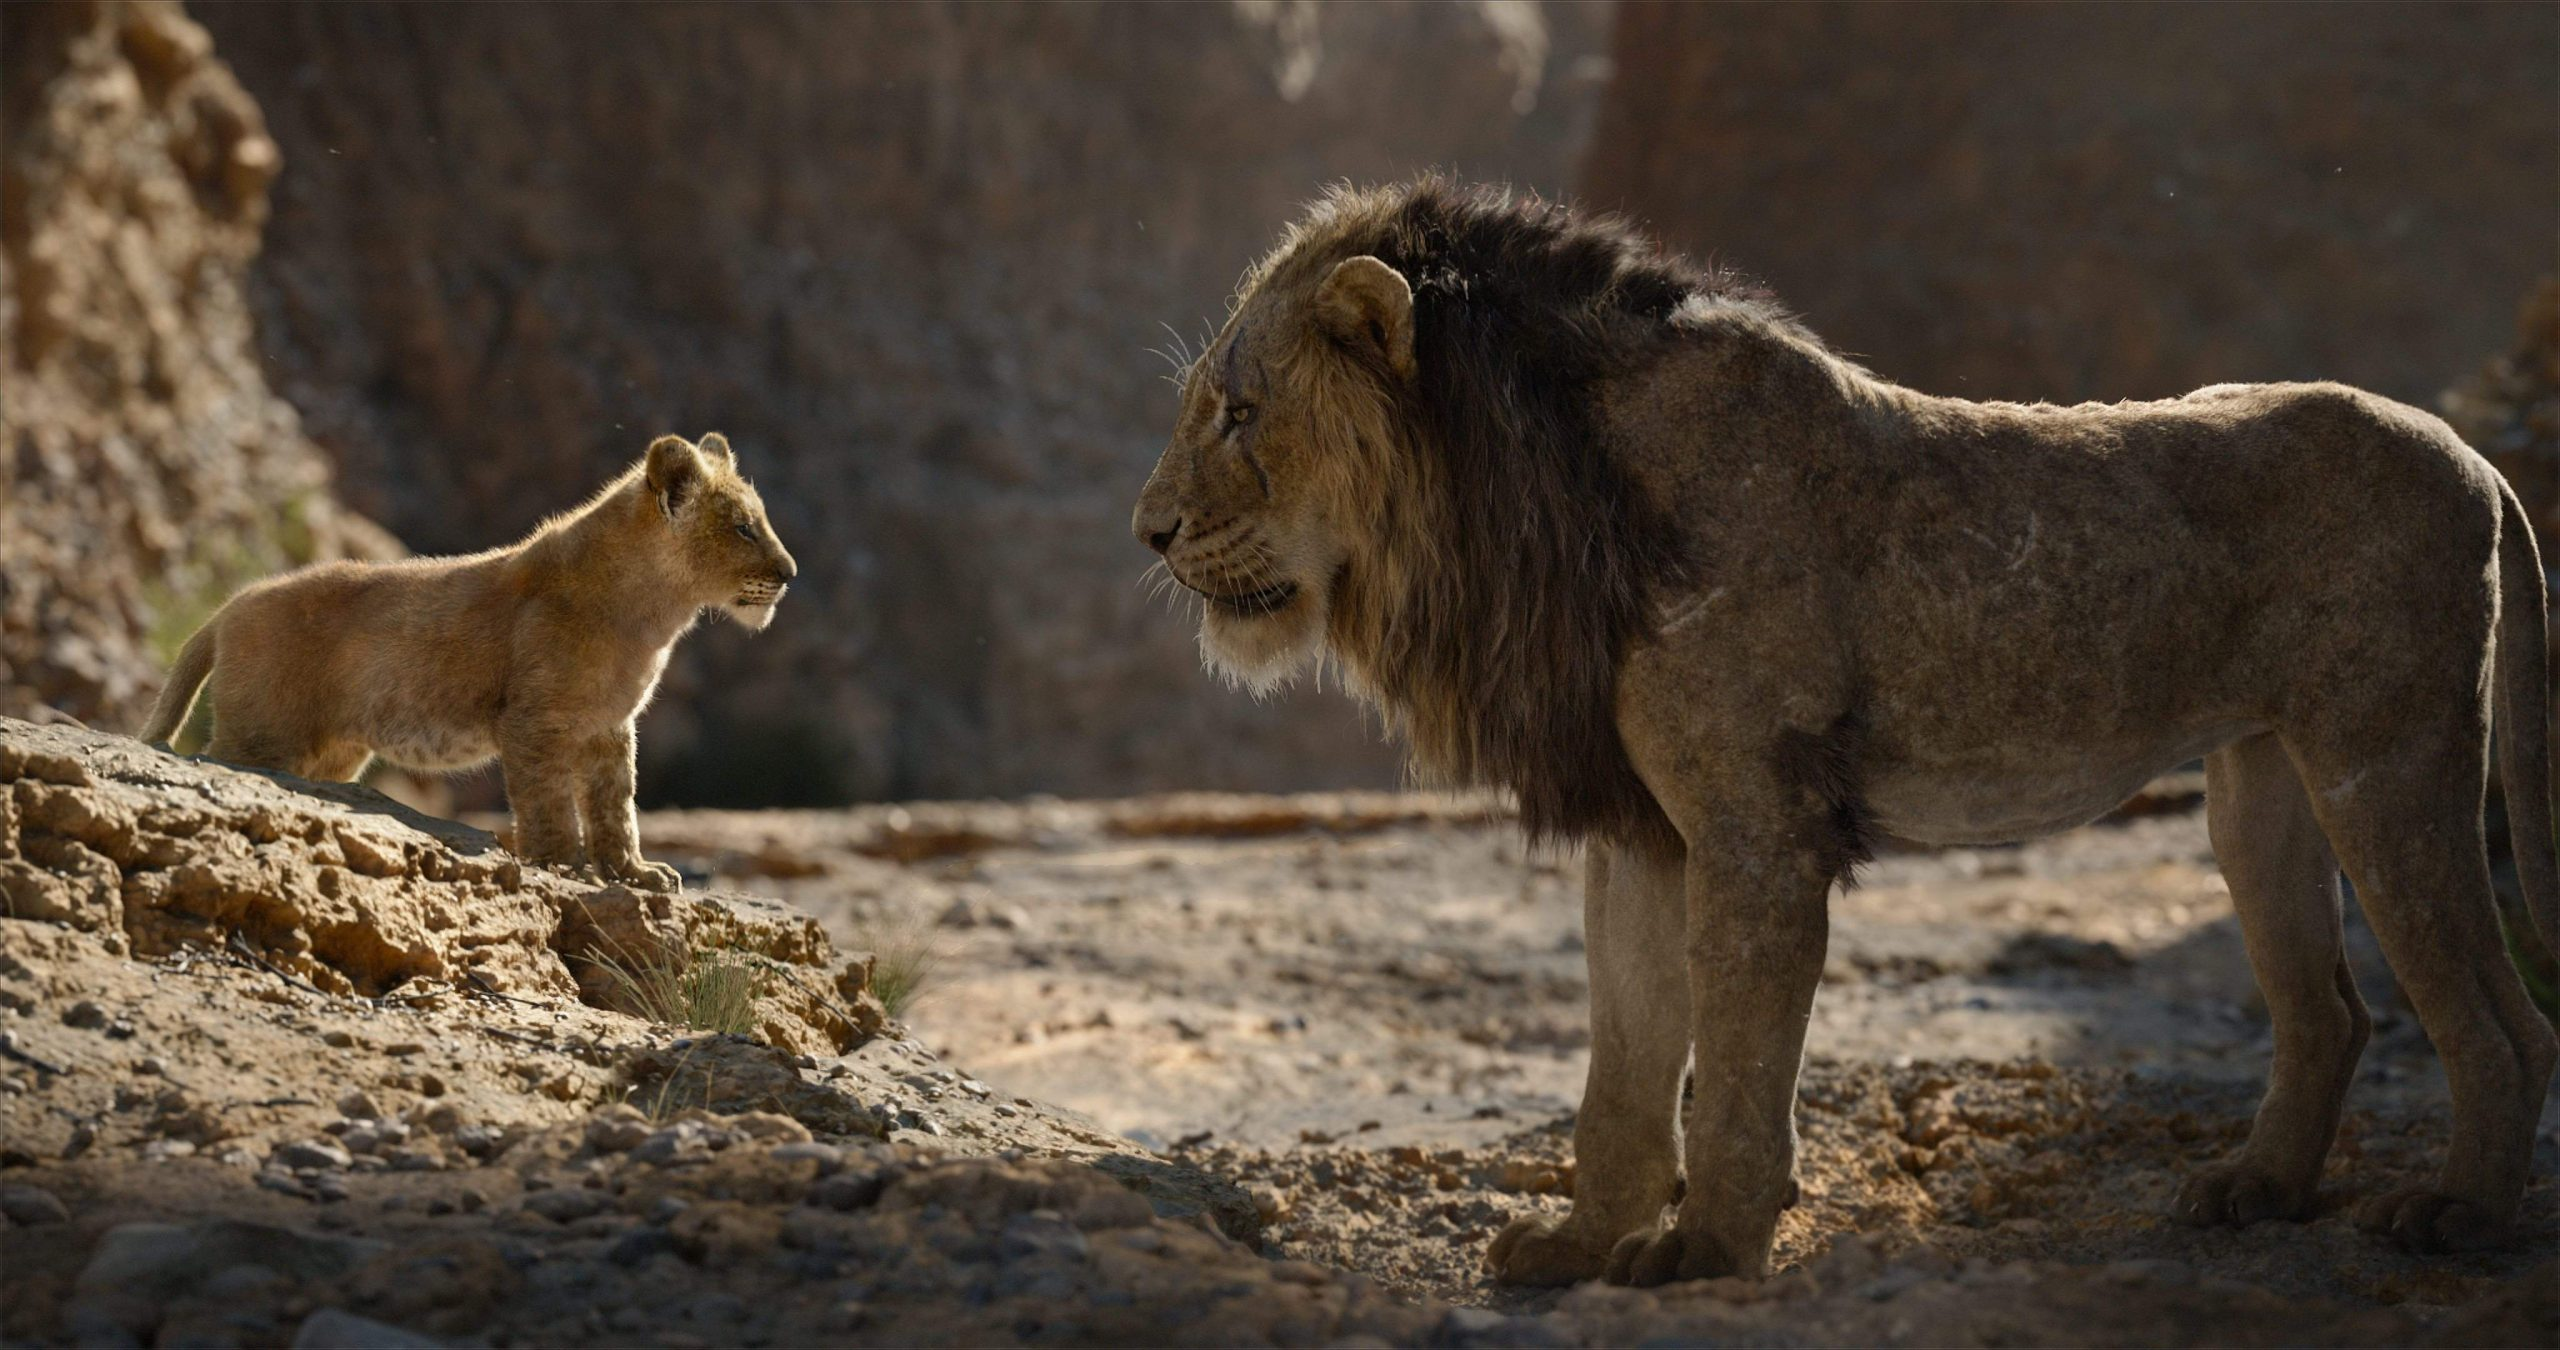 The Lion King Remake Sequel gets a new director